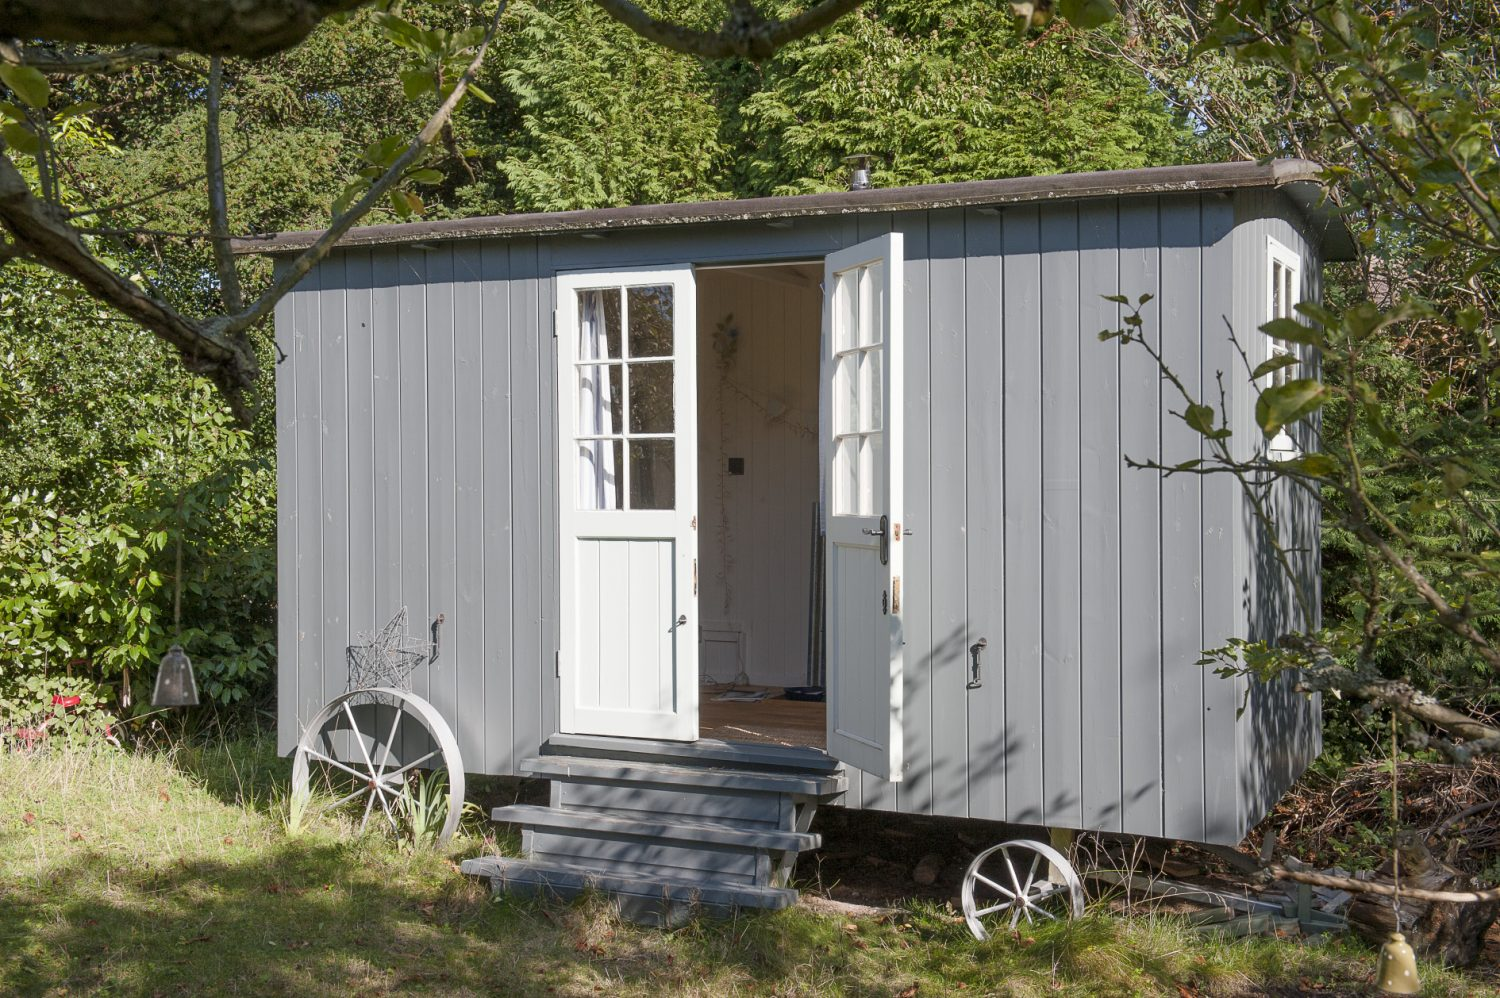 Outside, a shepherd's hut acts as a retreat for the family